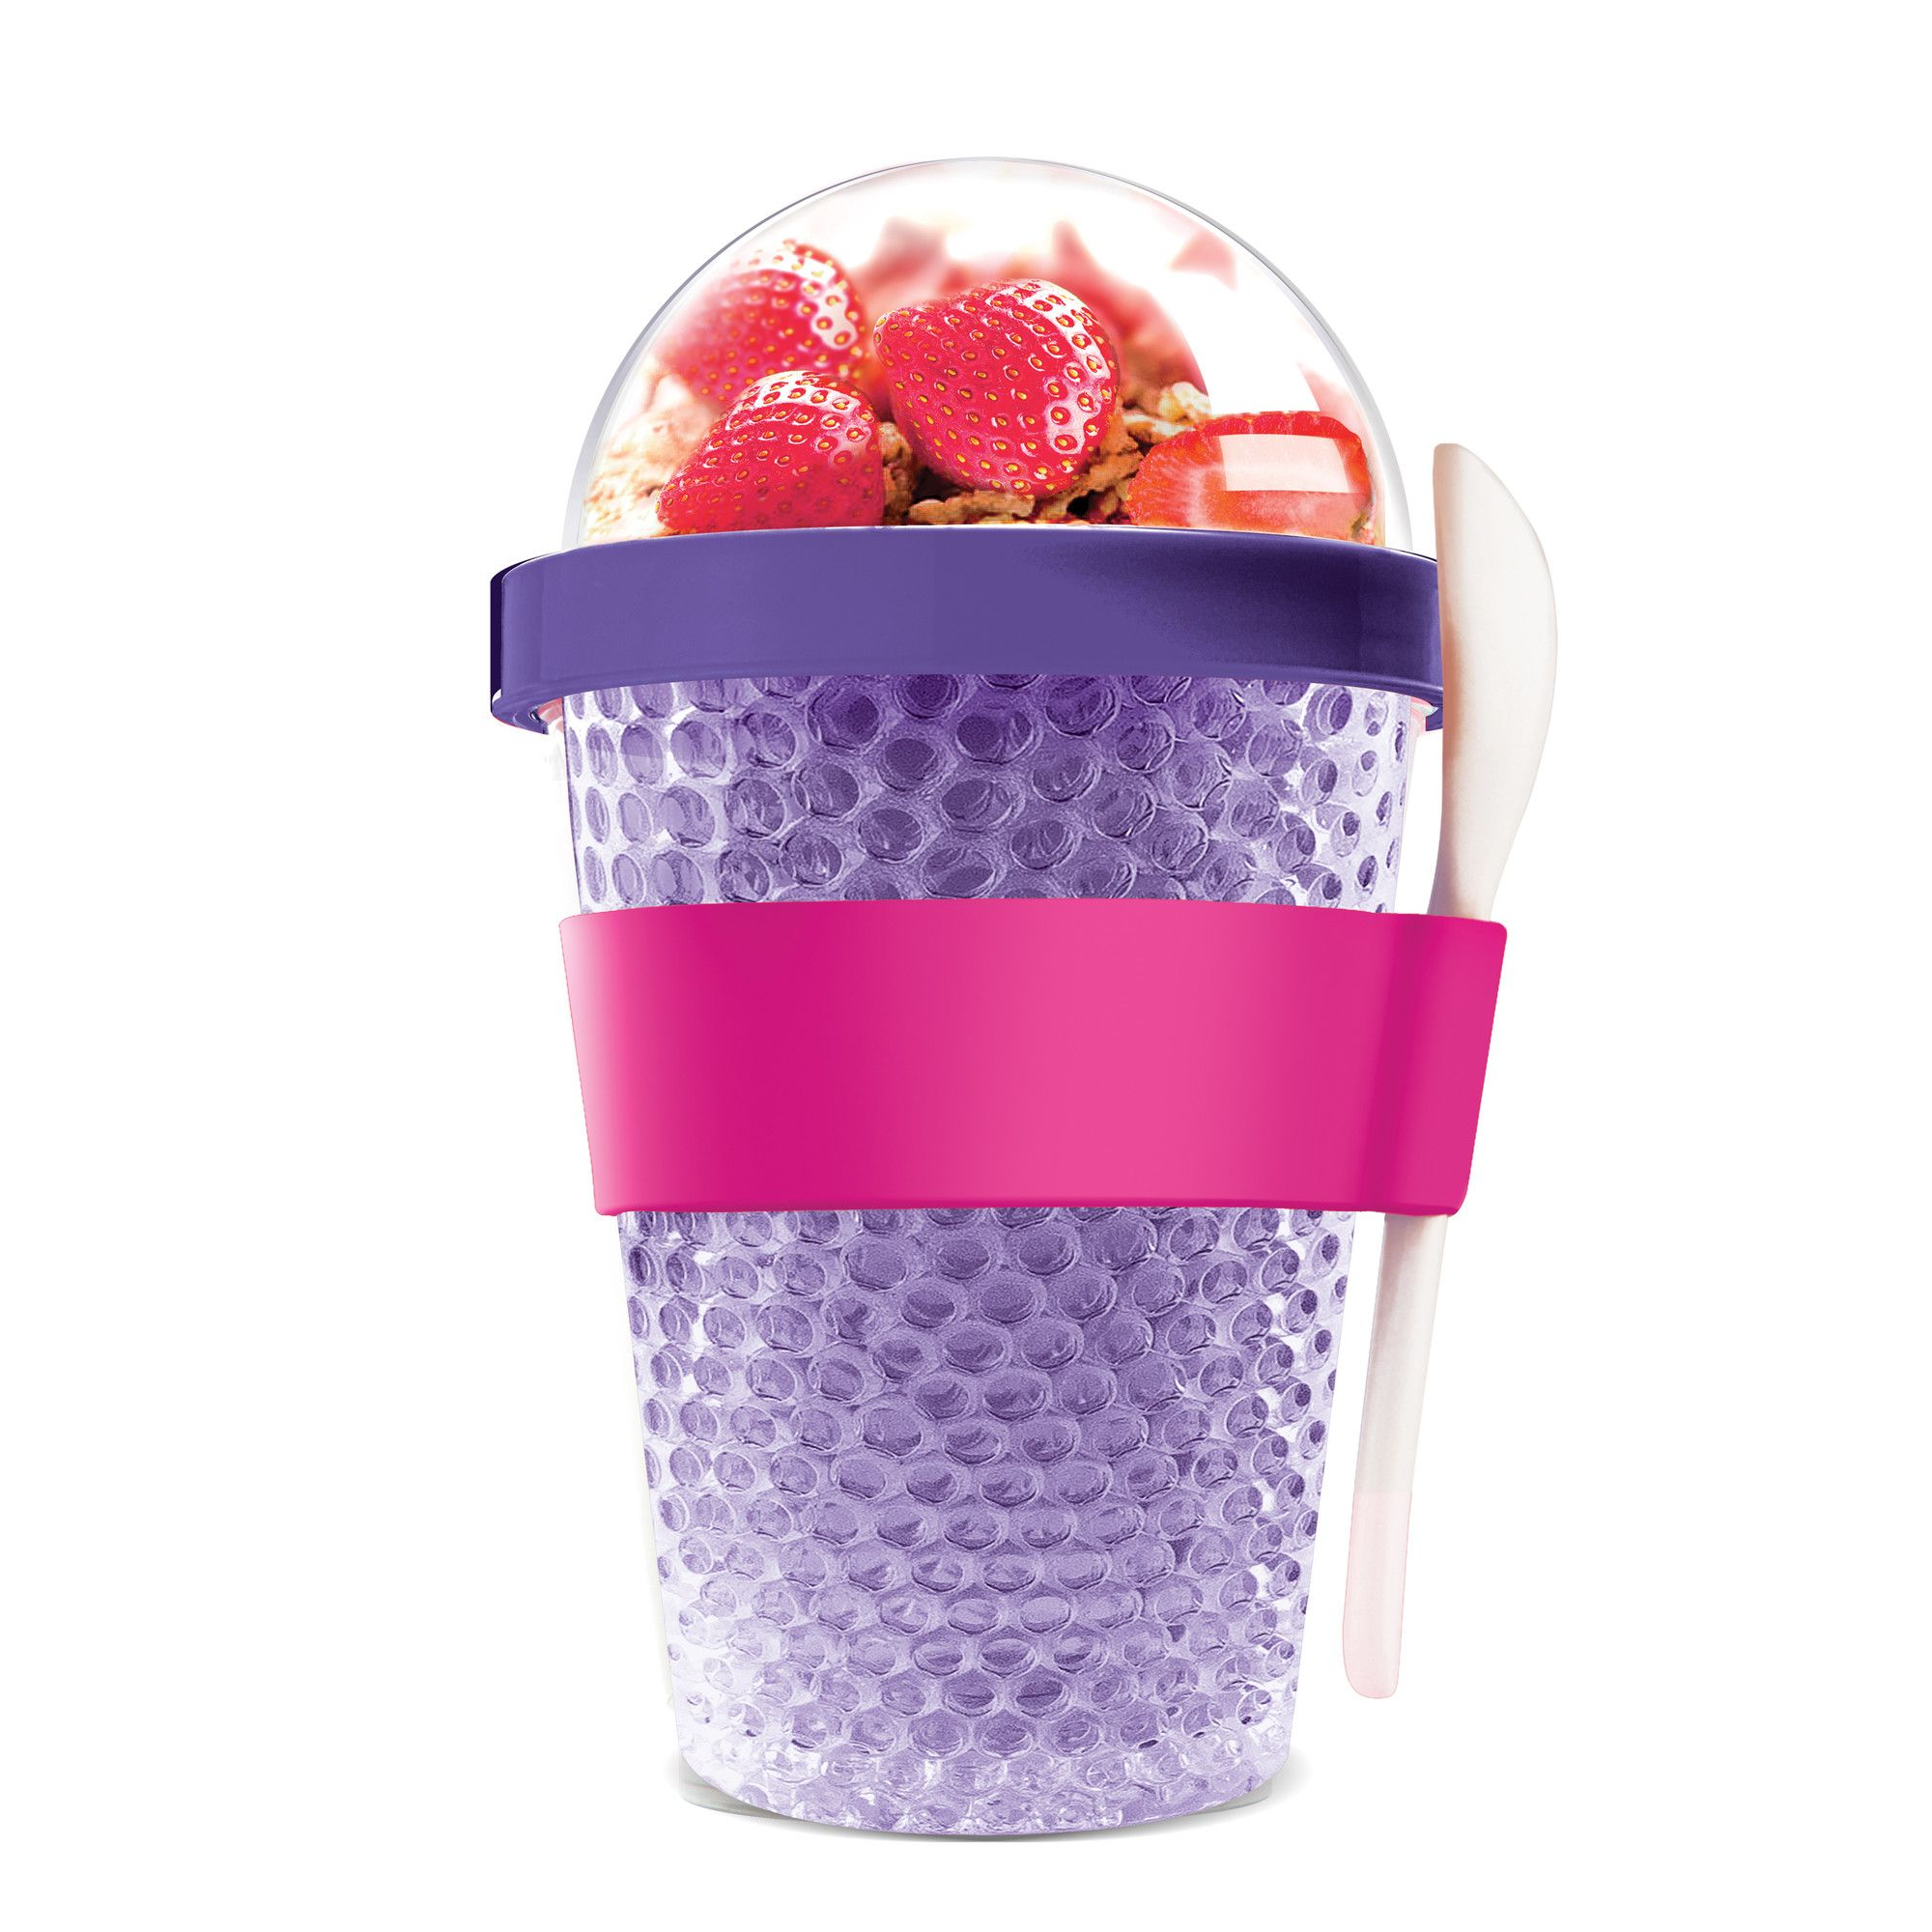 Chill Yo 2 Go Food Storage Container | Wayfair